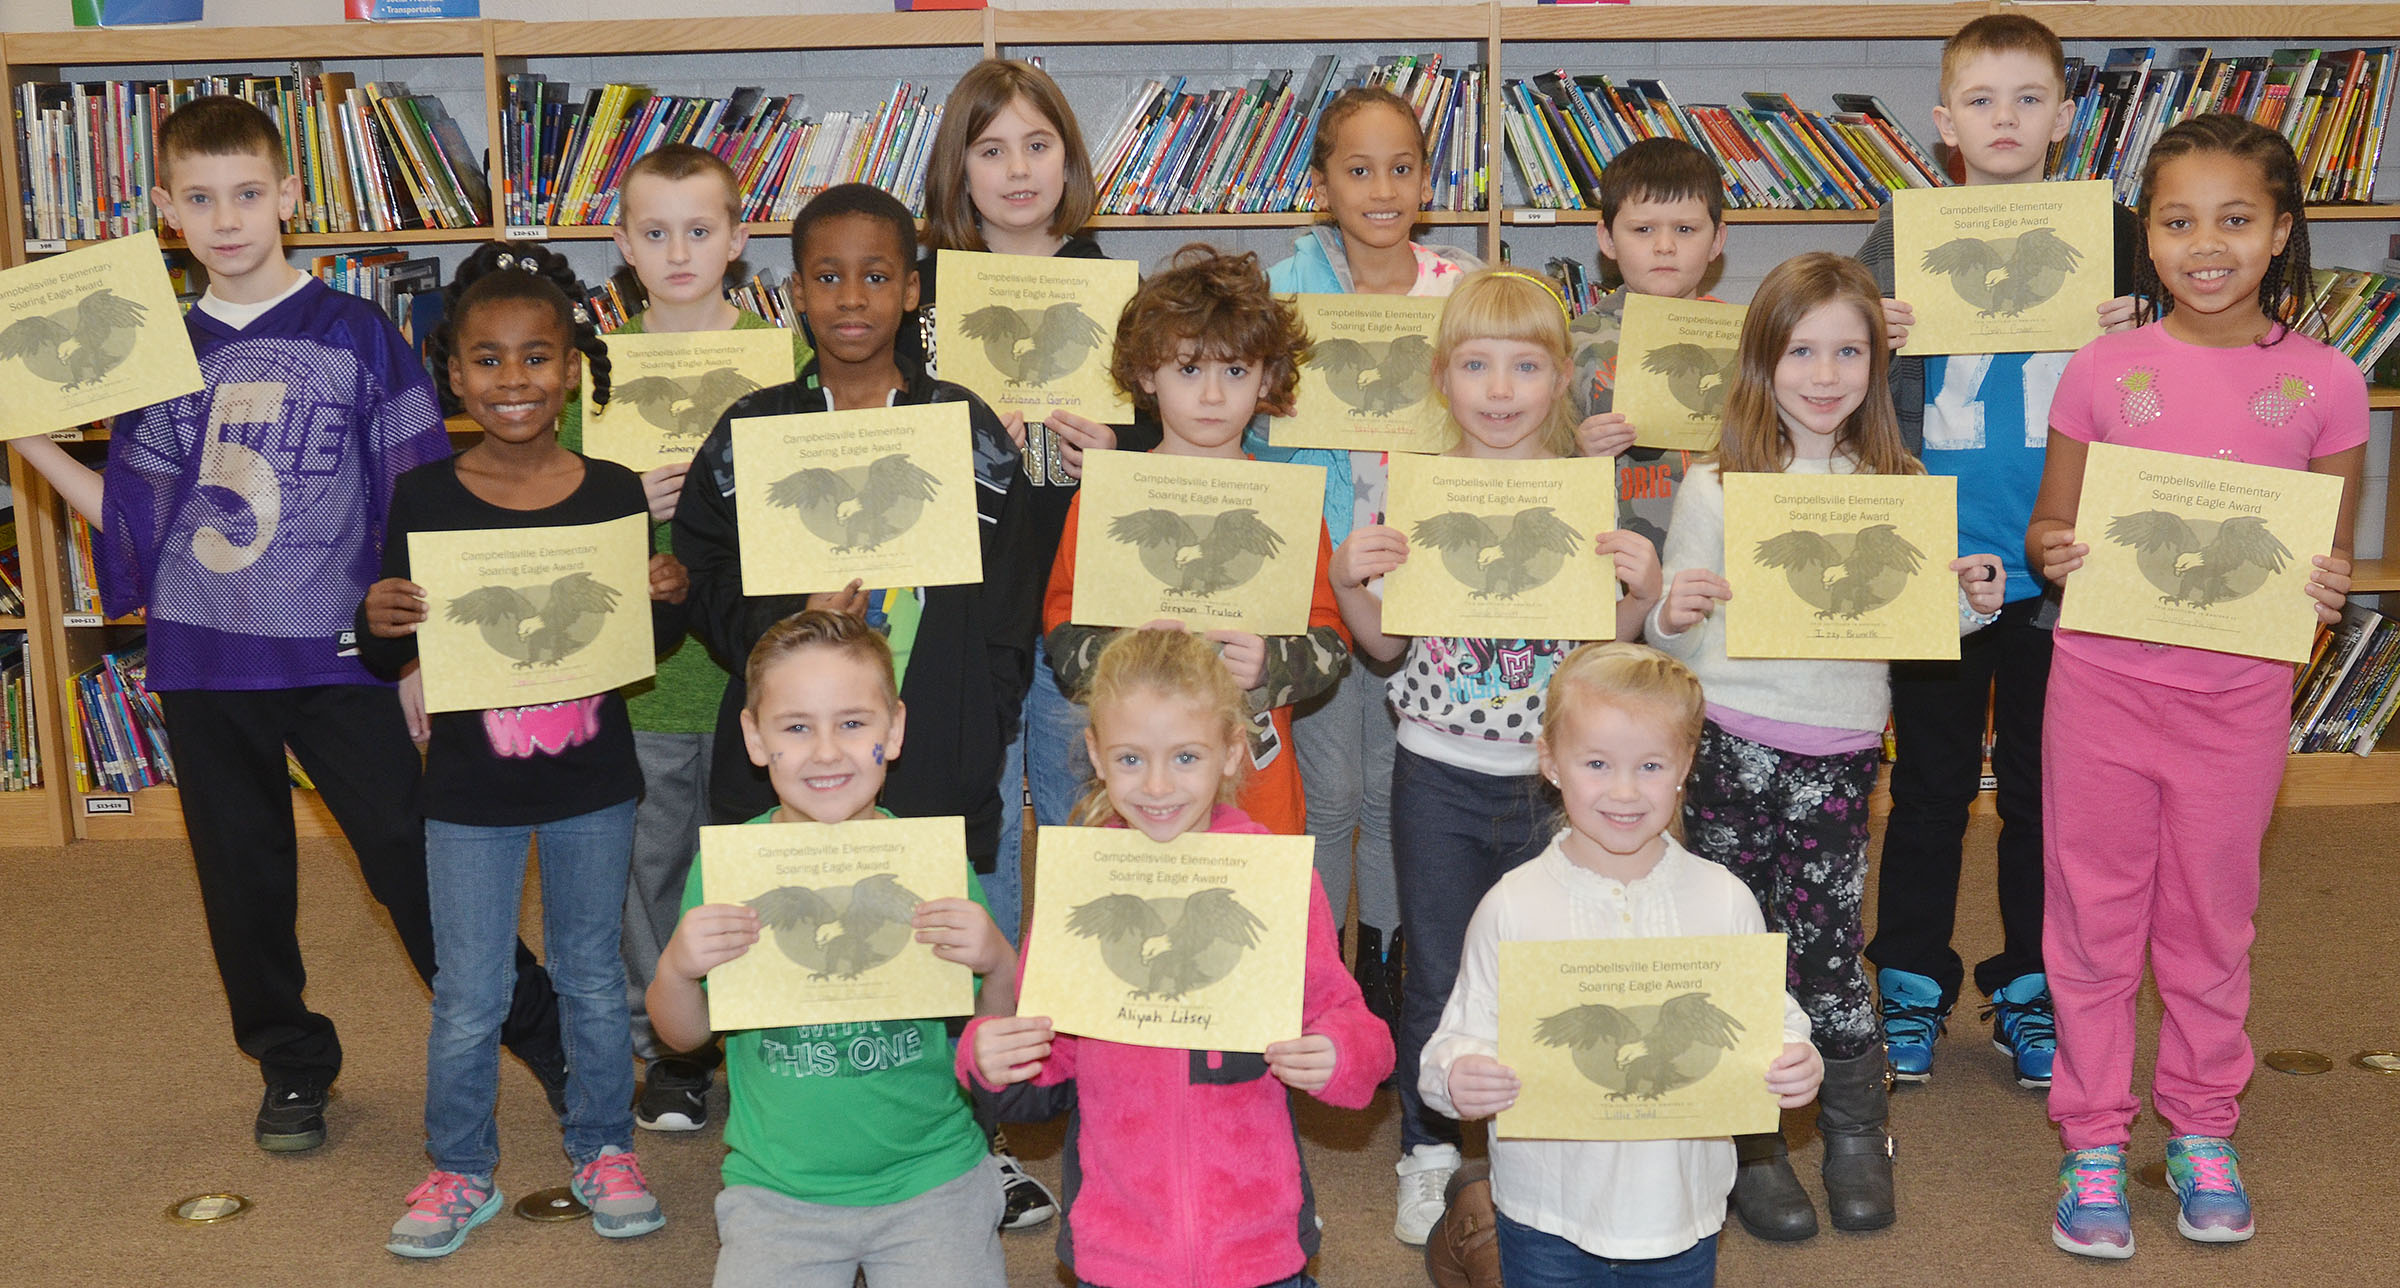 From left, front, are kindergarteners Braxton Rhodes, Aliyah Litsey and Lillie Judd. Second row, first-grader Destini Gholston, third-grader John Gholston, kindergartener Greyson Trulock and first-graders Sarah Parrott, Izzy Brunelle and Journey Webb. Back, second-graders Aidan Wilson and Zachary Cox, third-grader Adrianna Garvin, second-graders Yazlyn Sutton and Weston Veltman and third-grader Cash Cowan. Third-grader Raelyn Dunn isn't pictured.